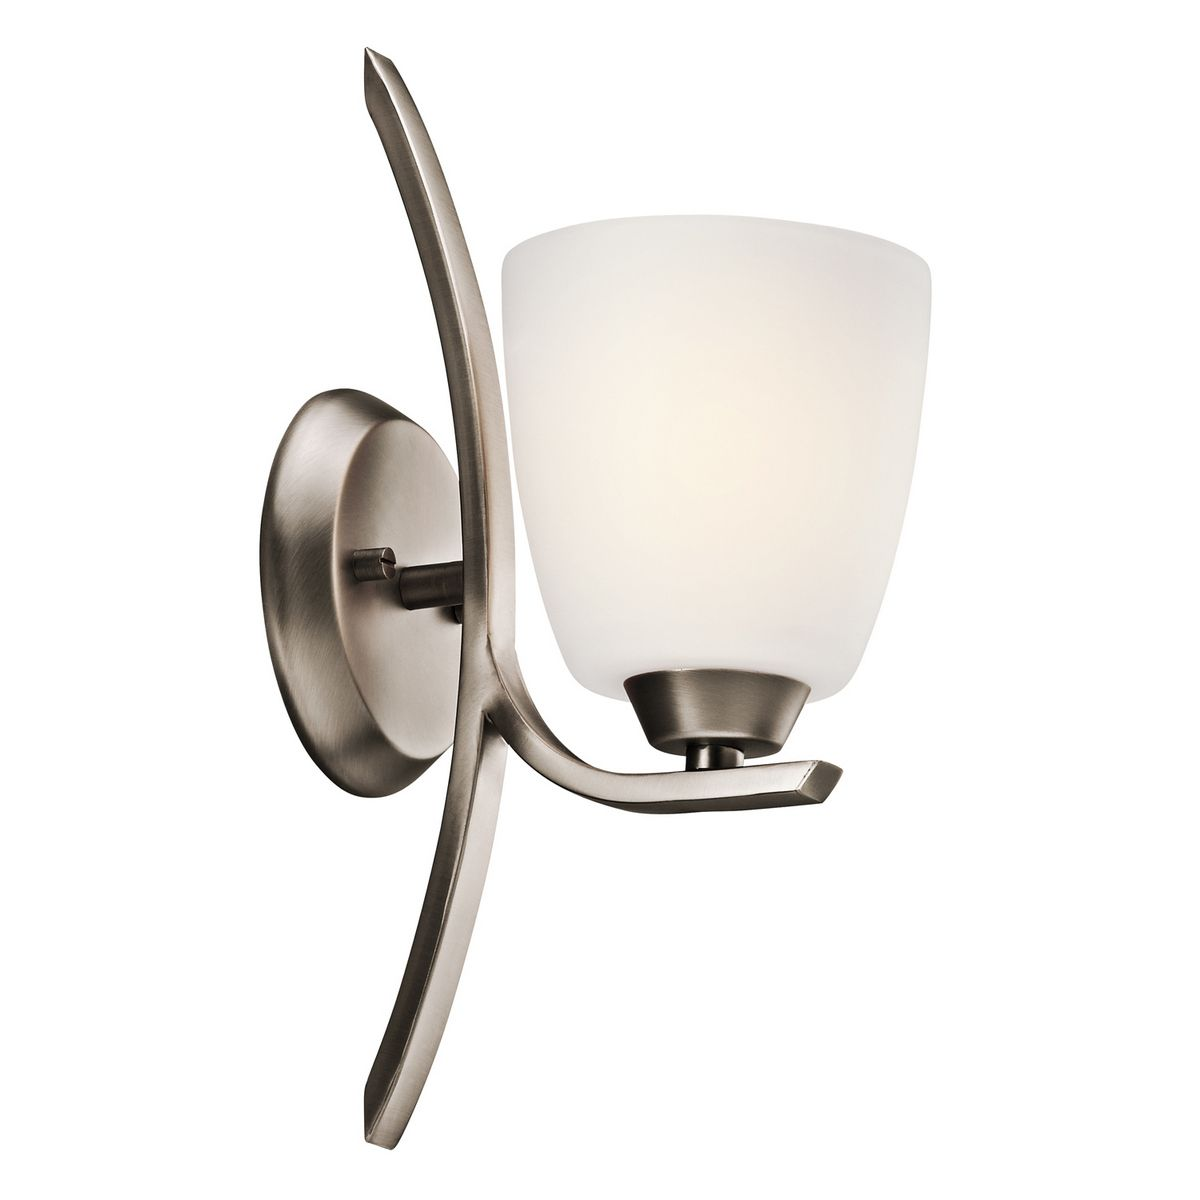 Kichler Granby Wall Sconce in Brushed Pewter